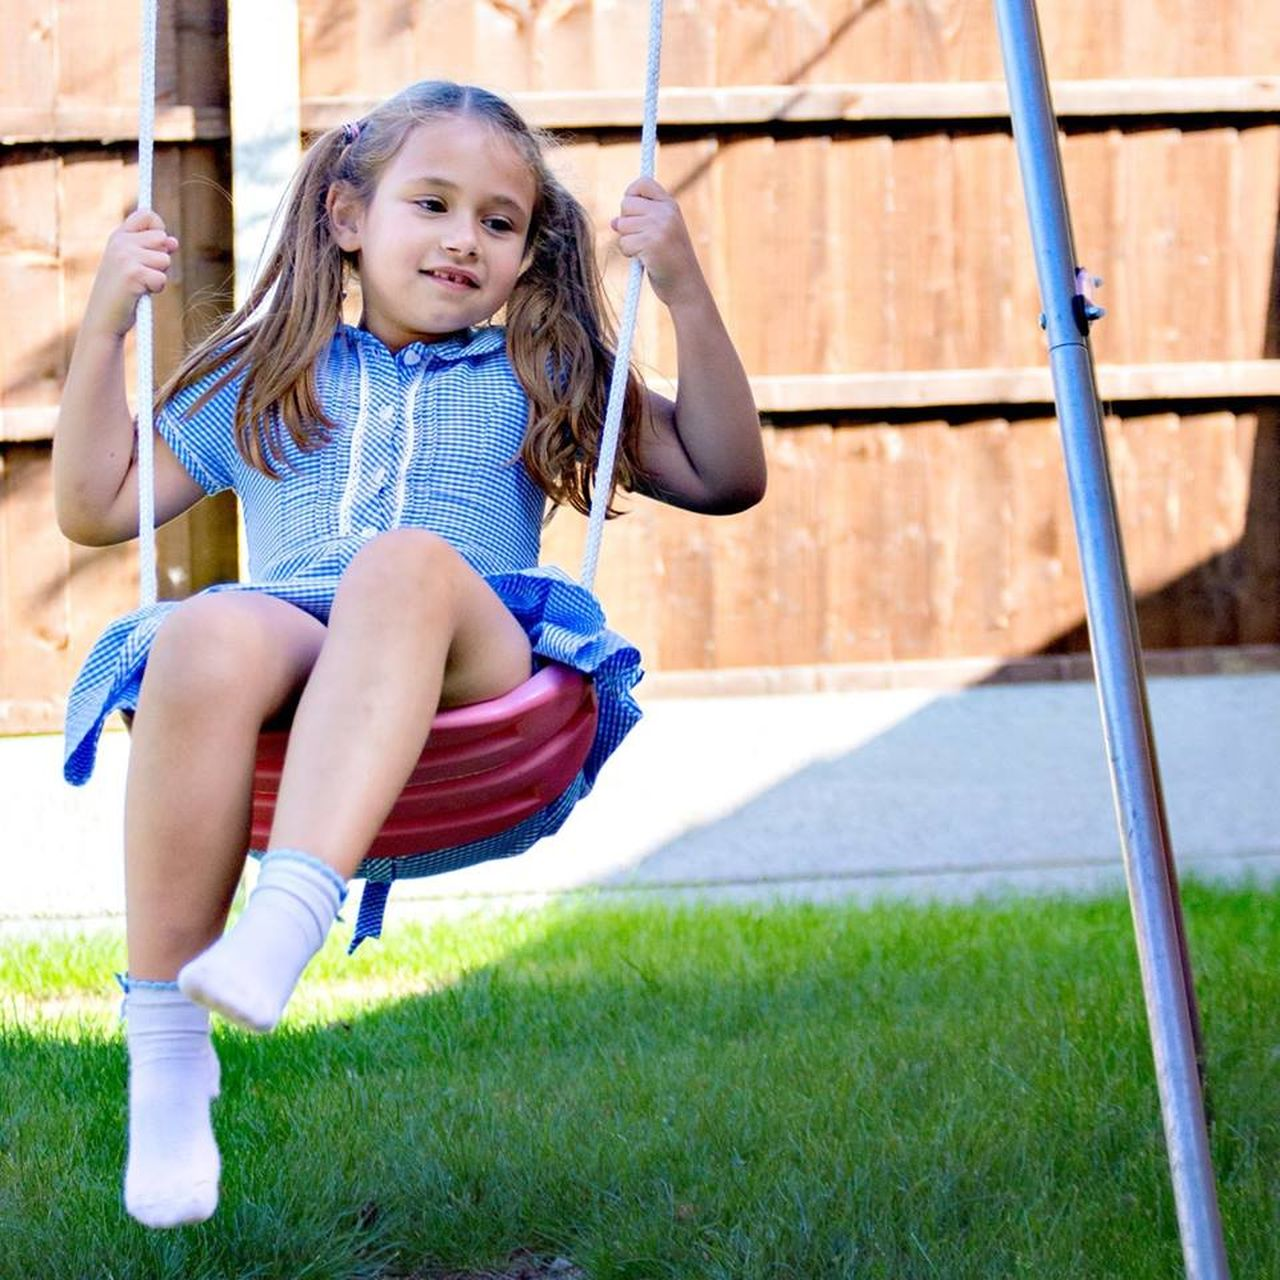 childhood, girls, child, full length, grass, playground, one person, children only, cute, sitting, happiness, outdoors, casual clothing, looking at camera, one girl only, day, portrait, smiling, elementary age, swing, lifestyles, real people, blond hair, people